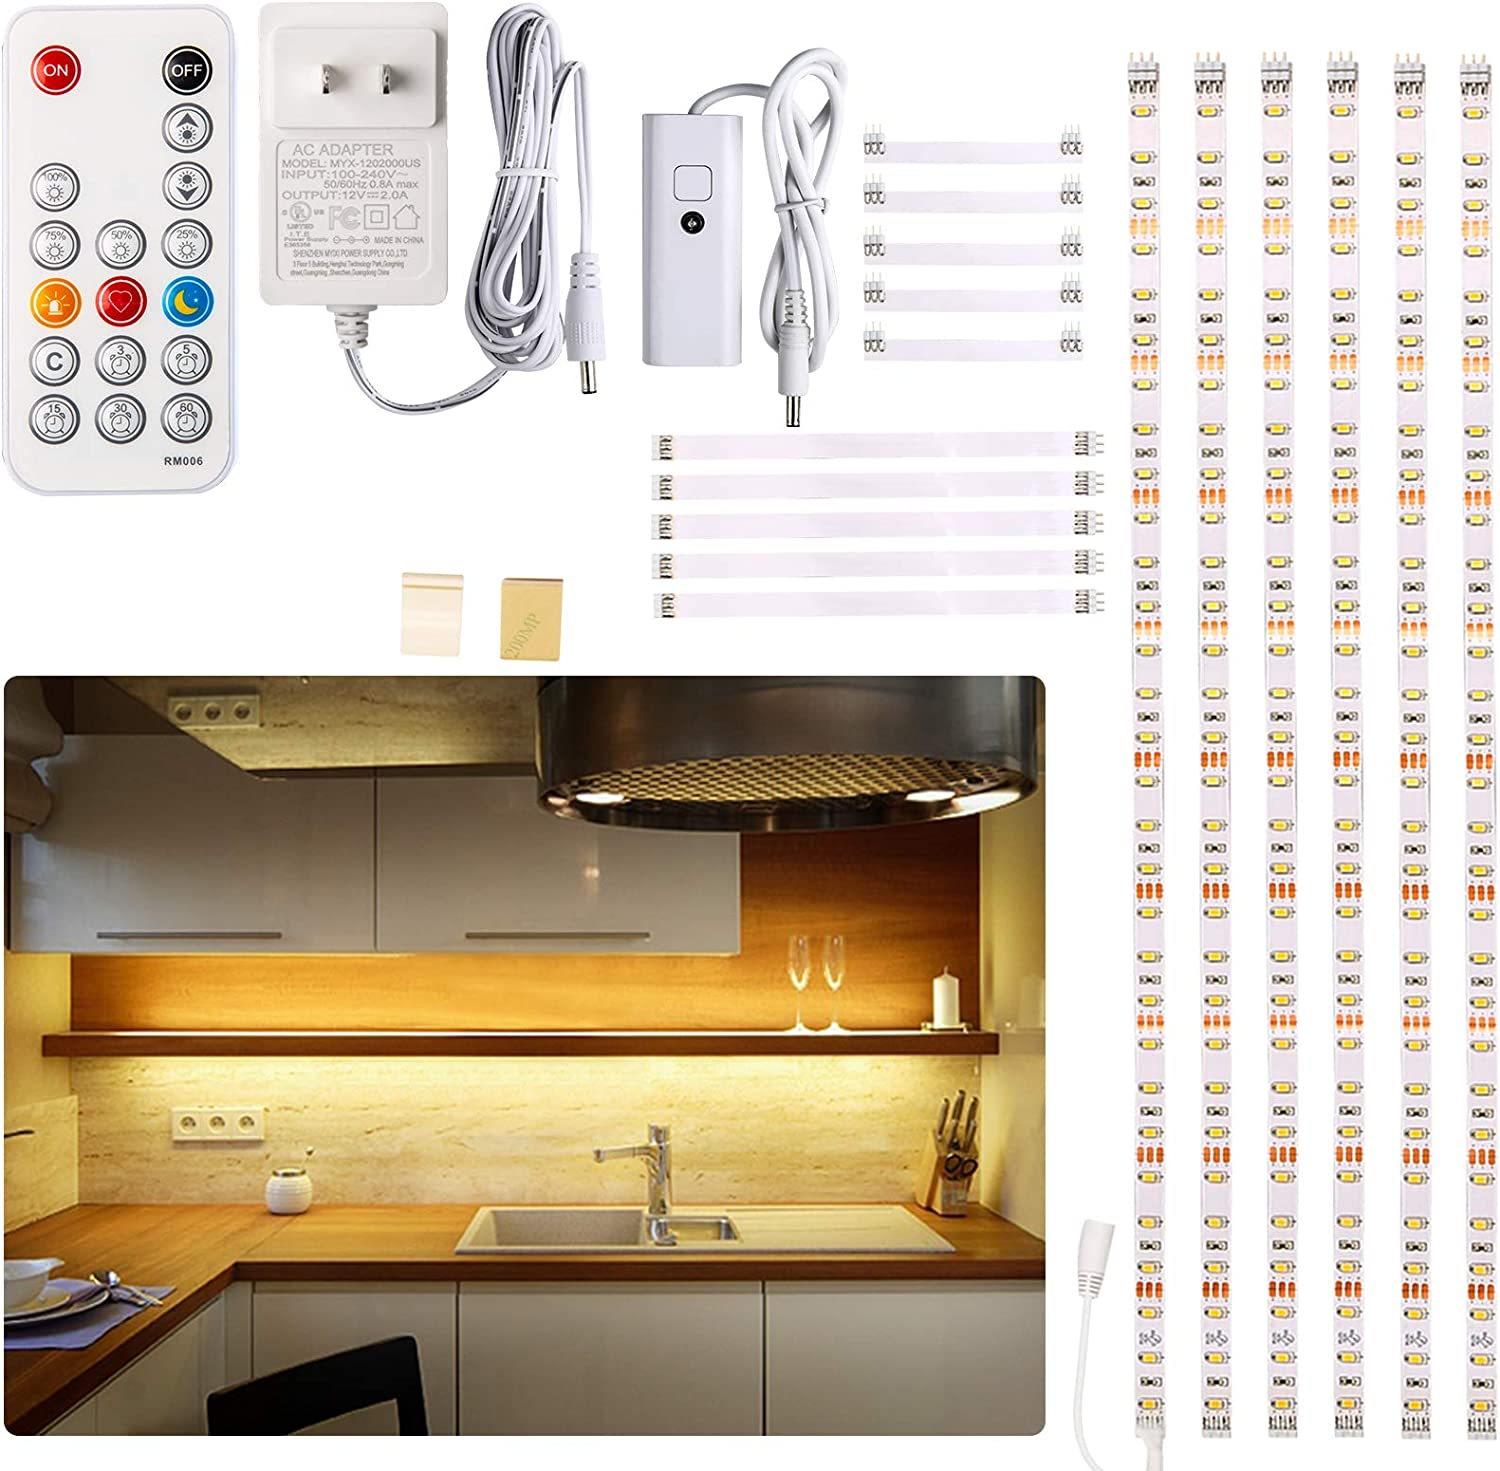 Under Cabinet Led Lighting Kit 6 Pcs Led Strip Lights With Remote Control Dimmer And Adapter Dimmable For Kitchen Cabinet Counter Shelf Tv Back Showcase 2700k Warm White Bright Timing Amazon Com